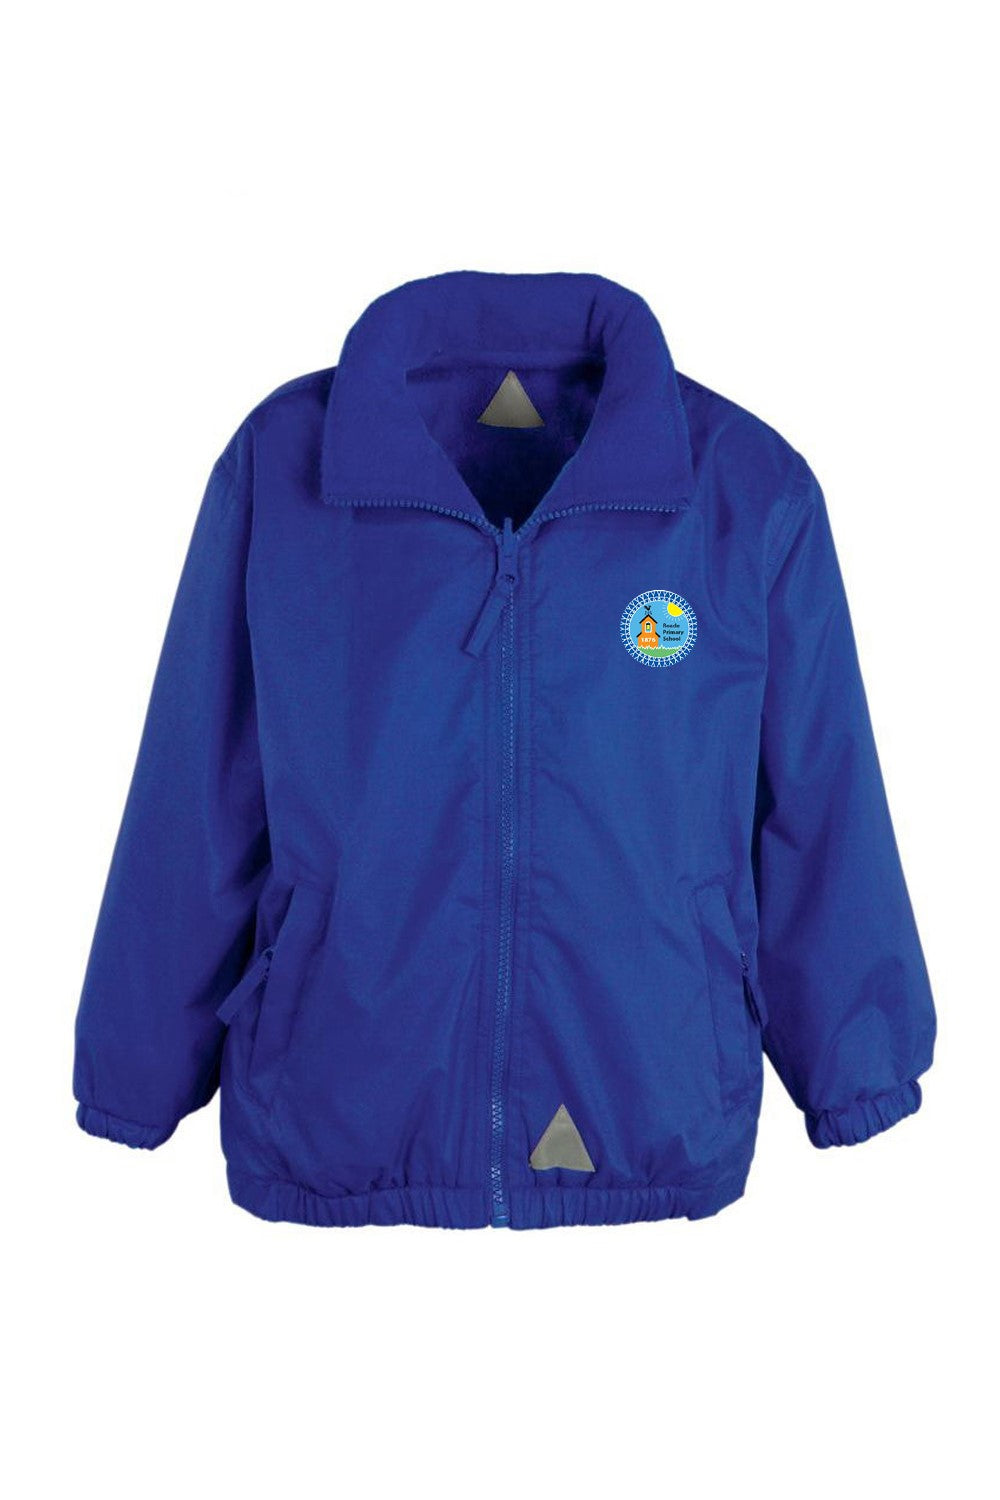 Roade showerproof reversible fleece jacket